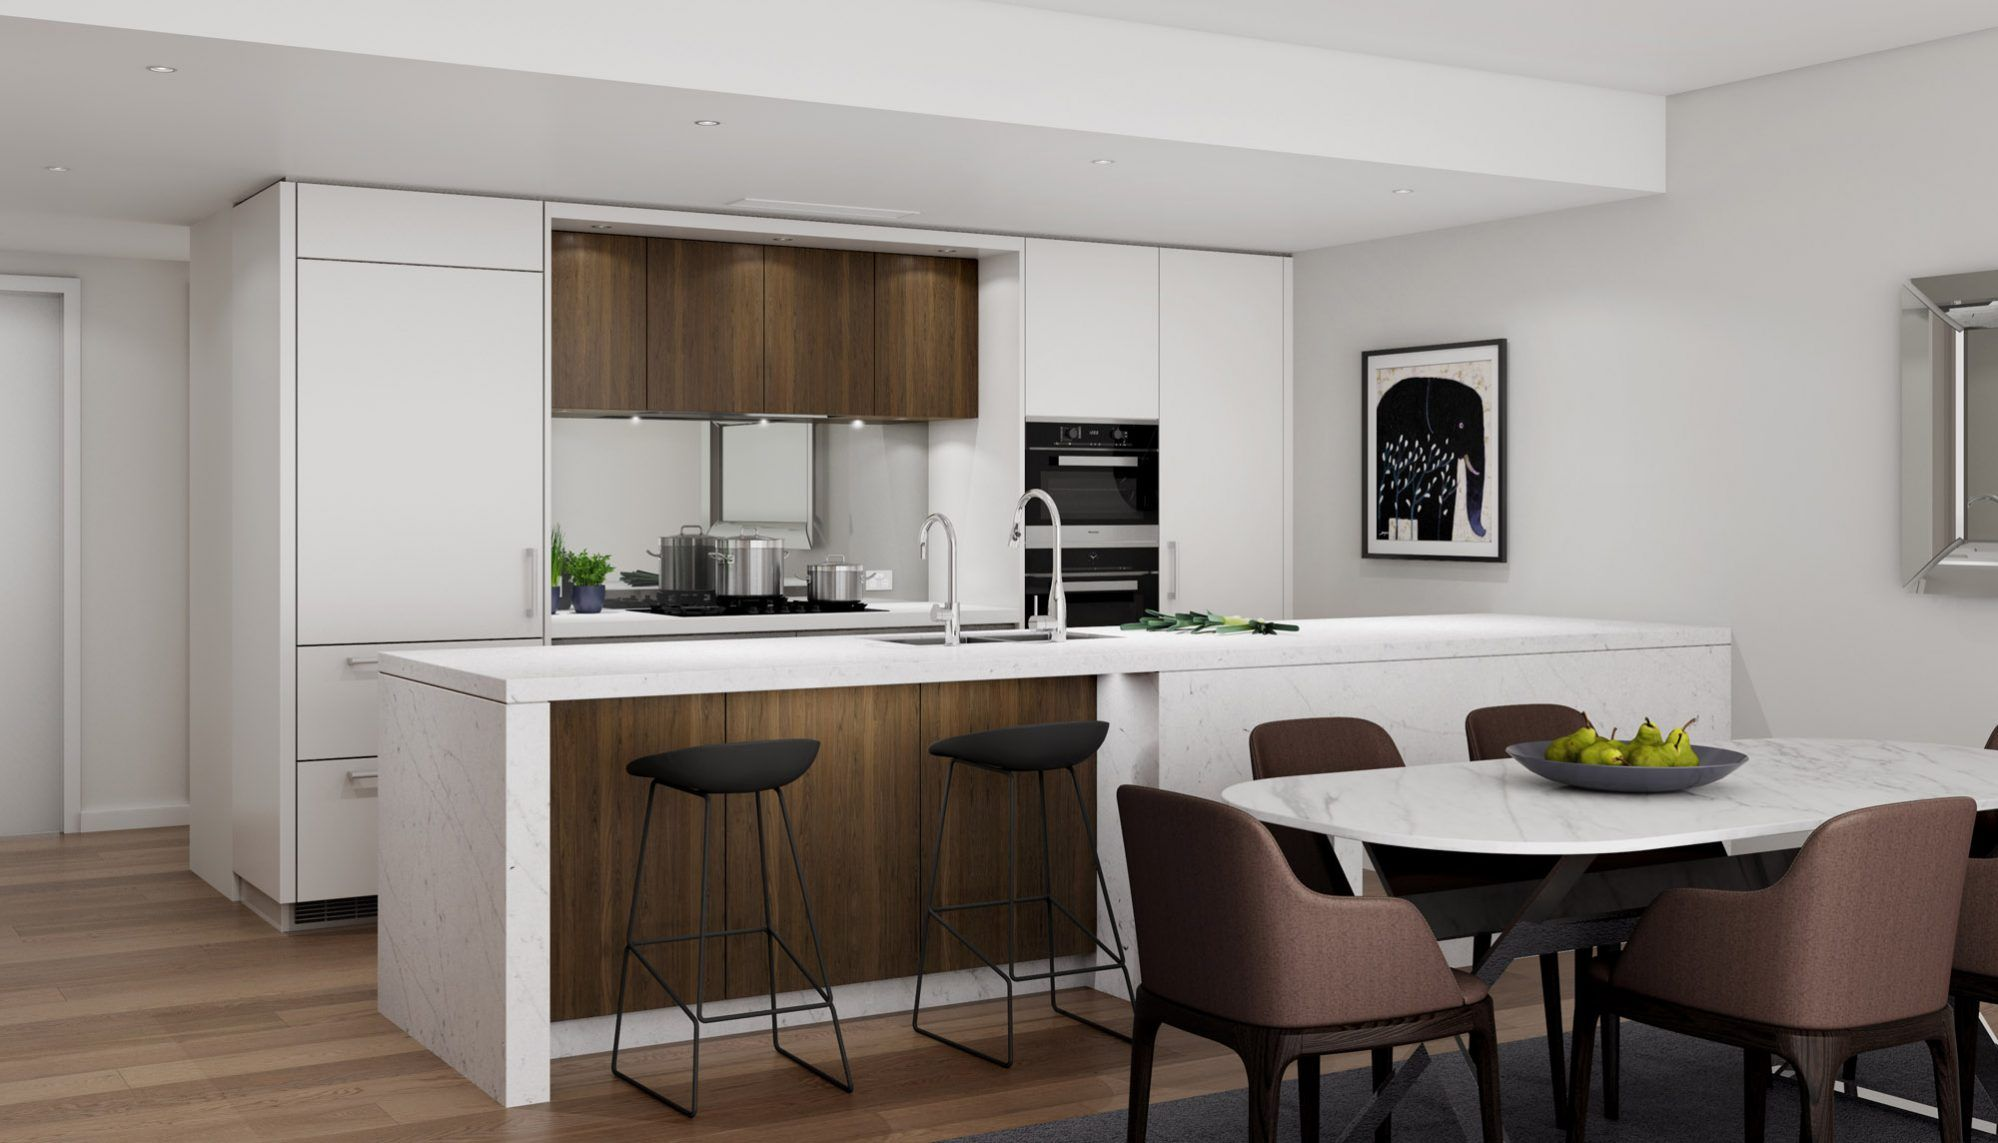 modern kitchen designs modern kitchen kitchen concepts on awesome modern kitchen design ideas id=86433